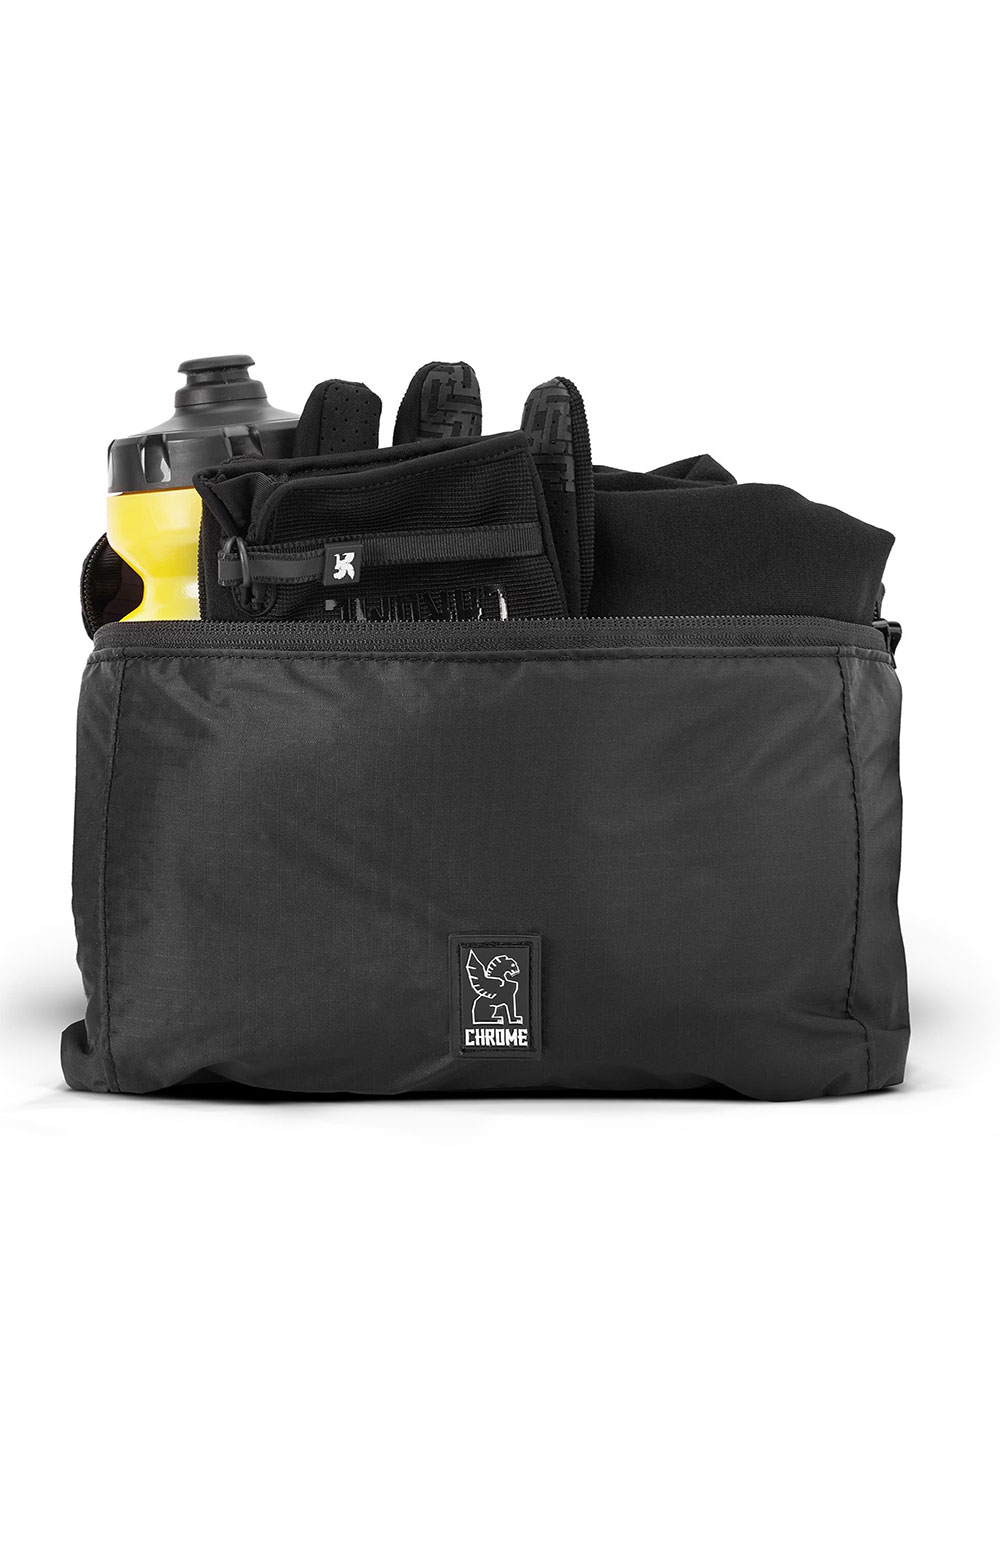 (BG-300-BK) Packable Waistpack - Black 3